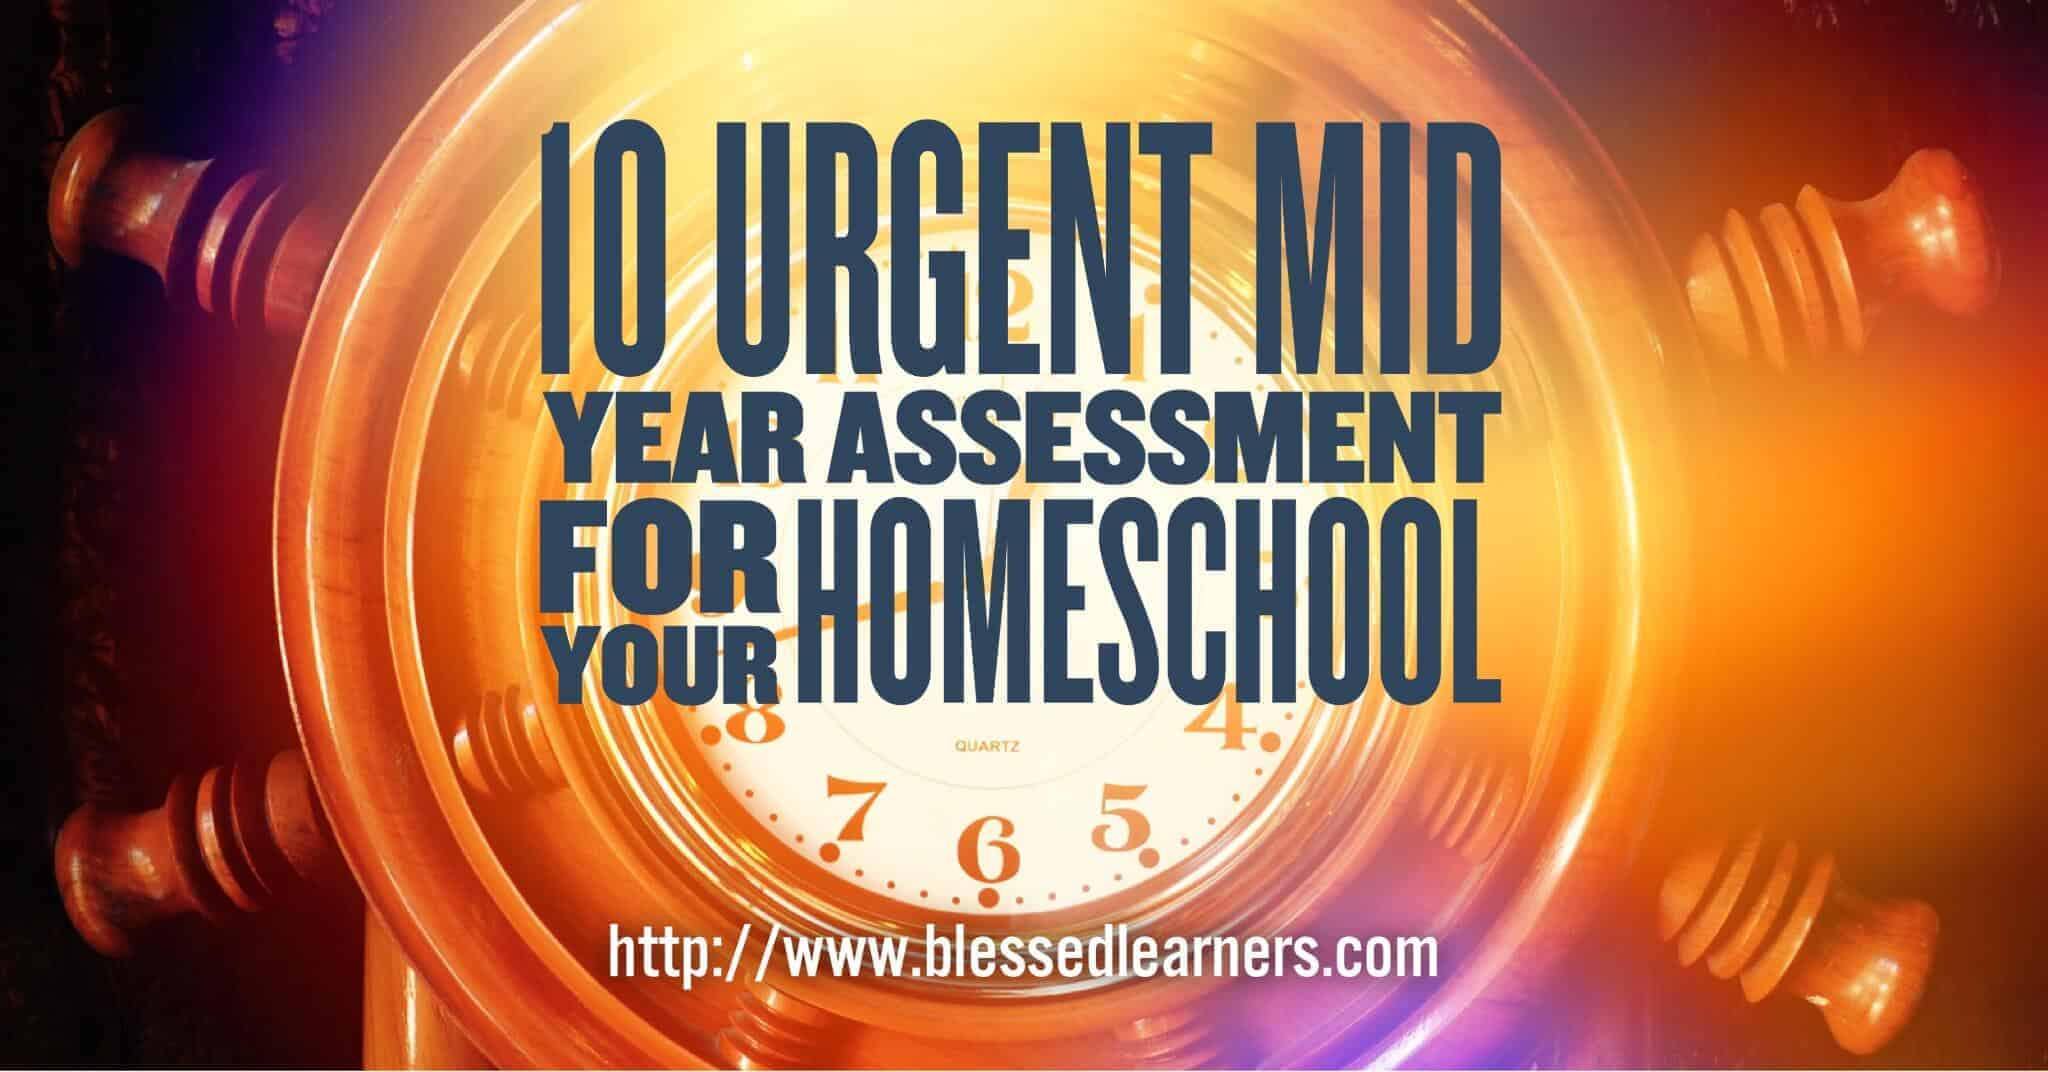 Assessment for your homeschool